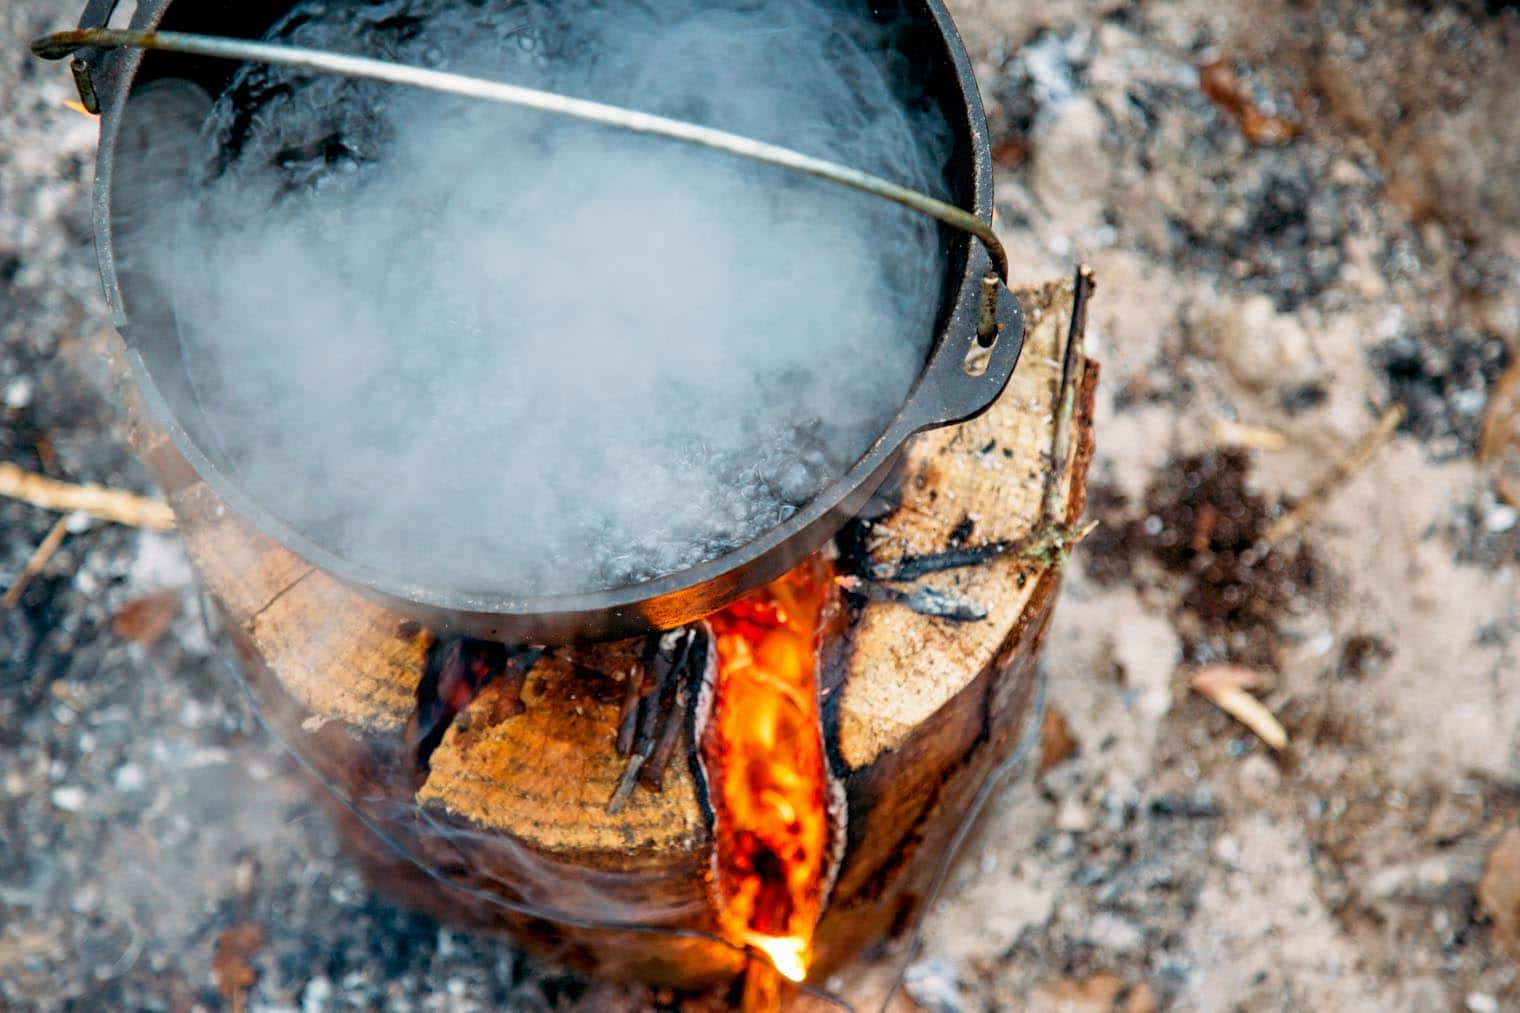 A Dutch oven with boiling water on top of a Swedish firelog